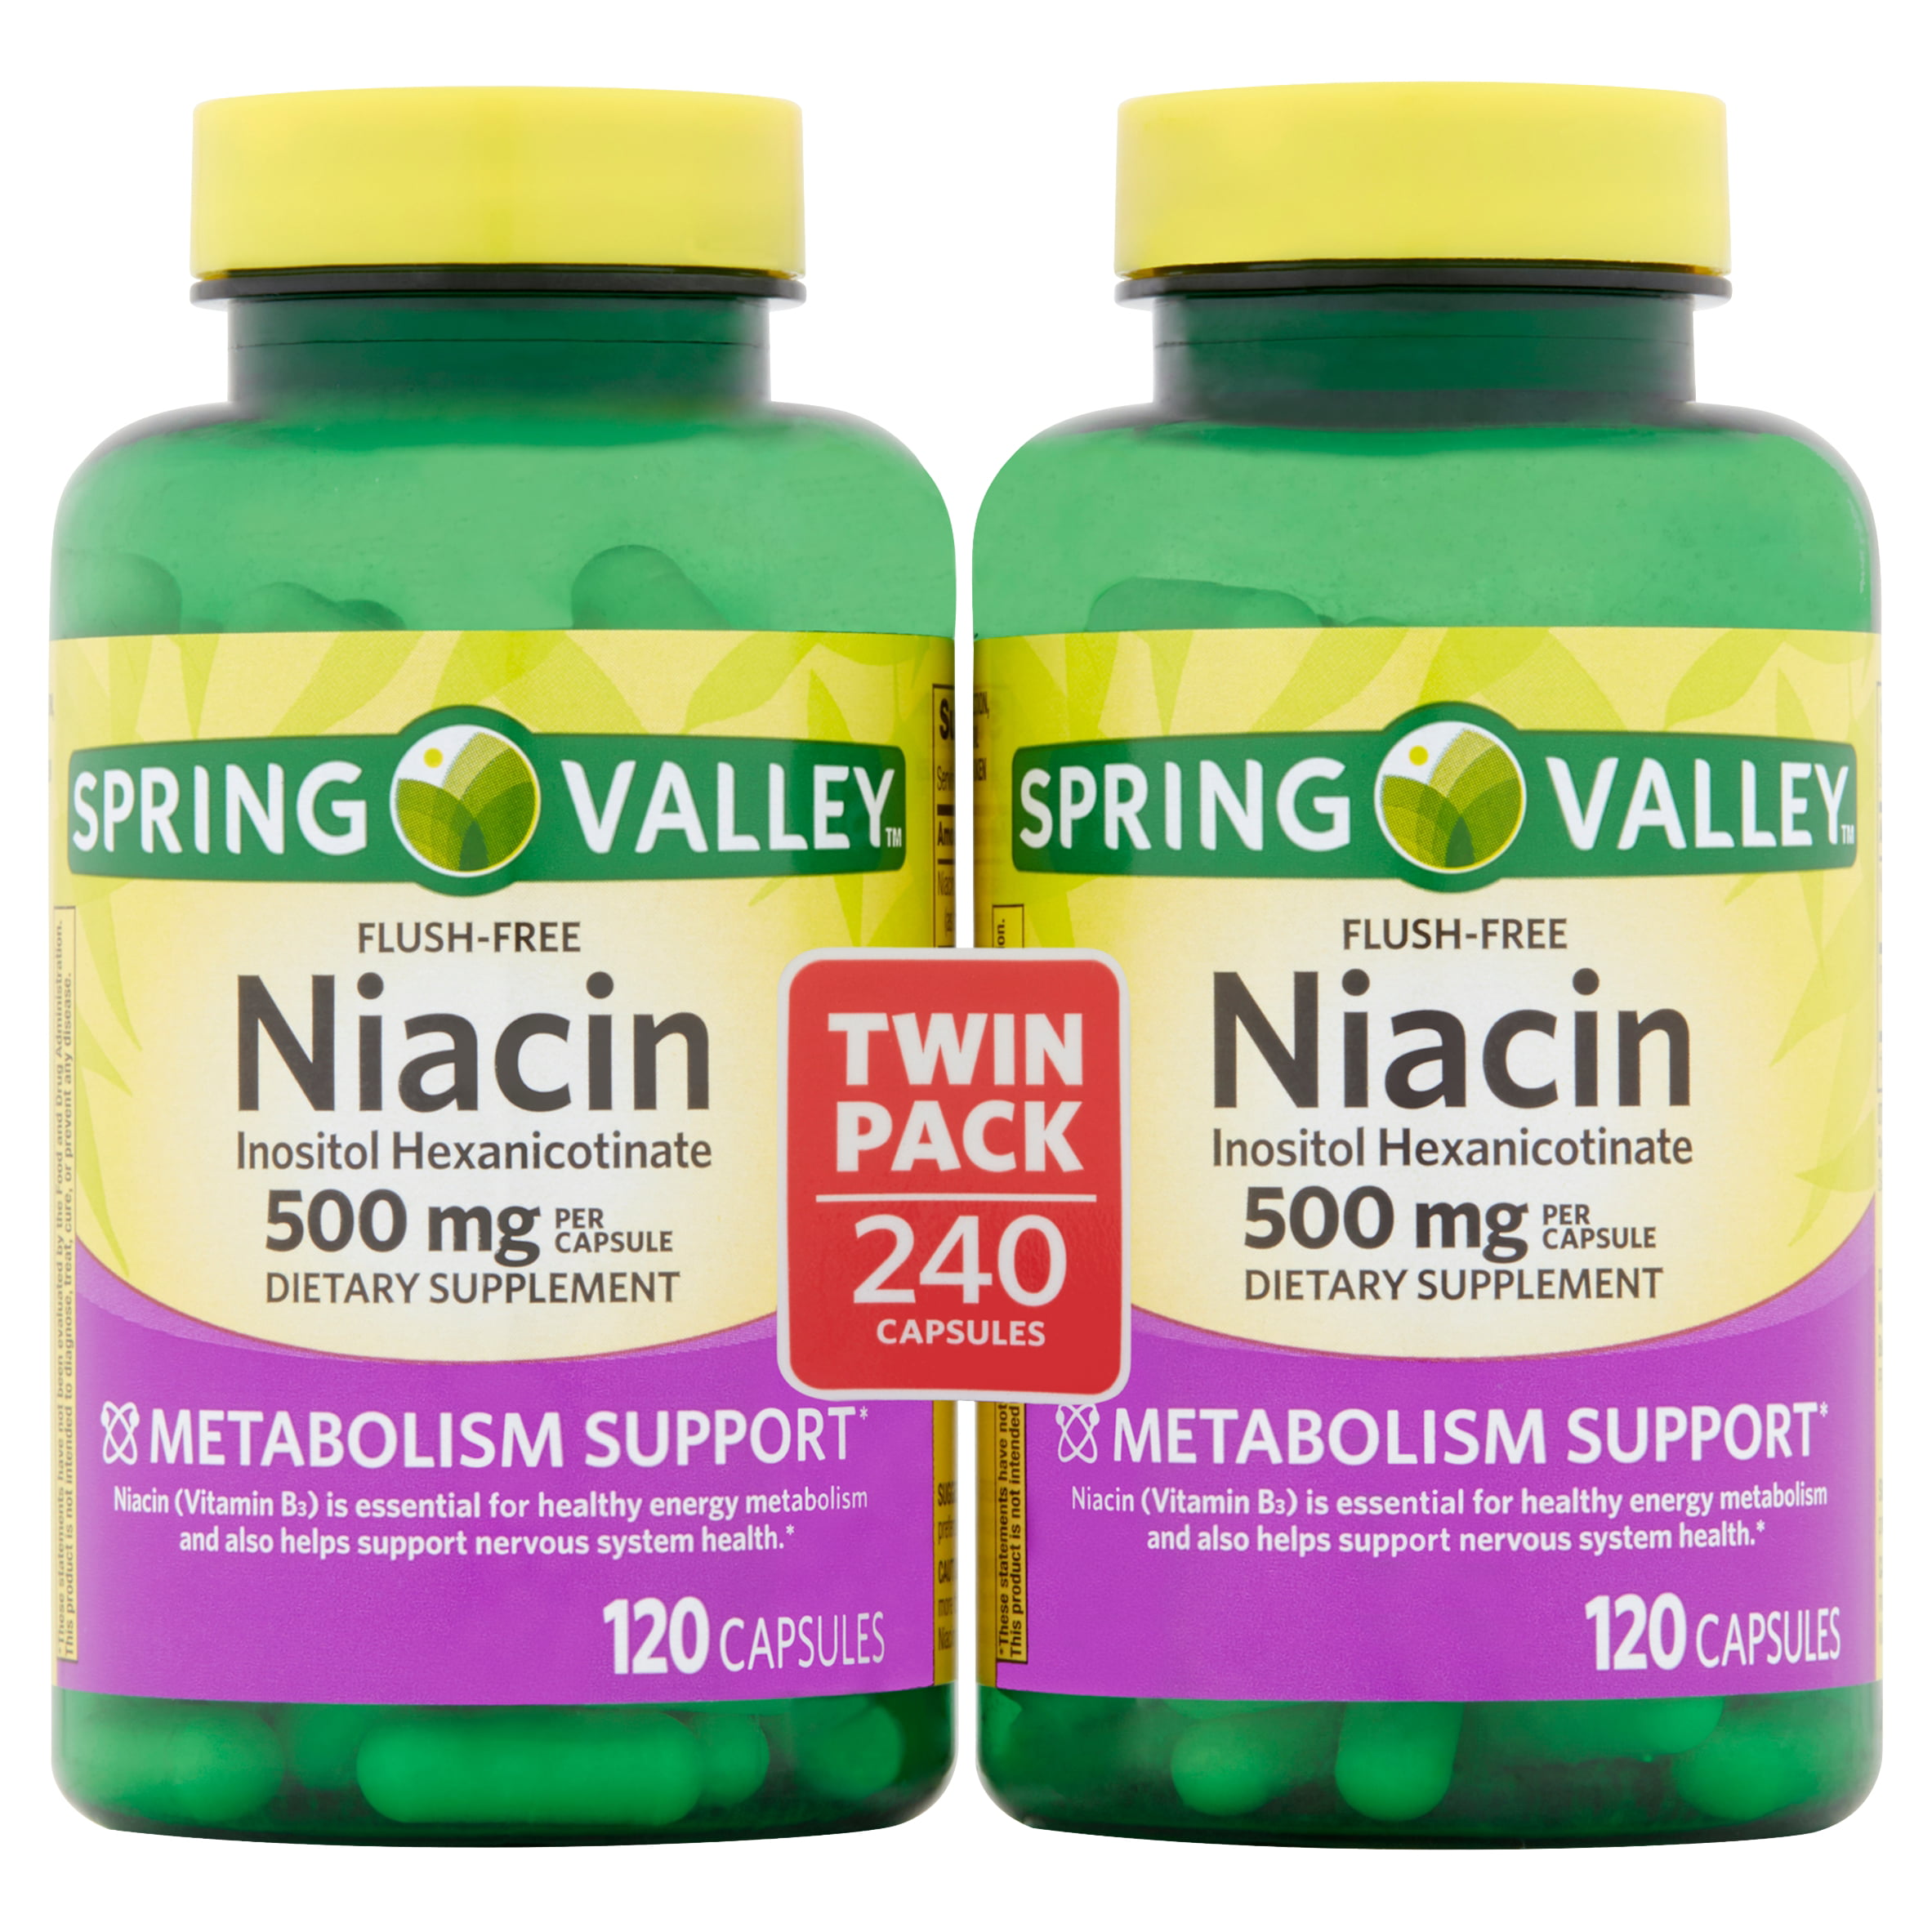 754c91152ce4a9 Spring Valley Flush-Free Niacin Inositol Hexanicotinate Capsules Twin Pack